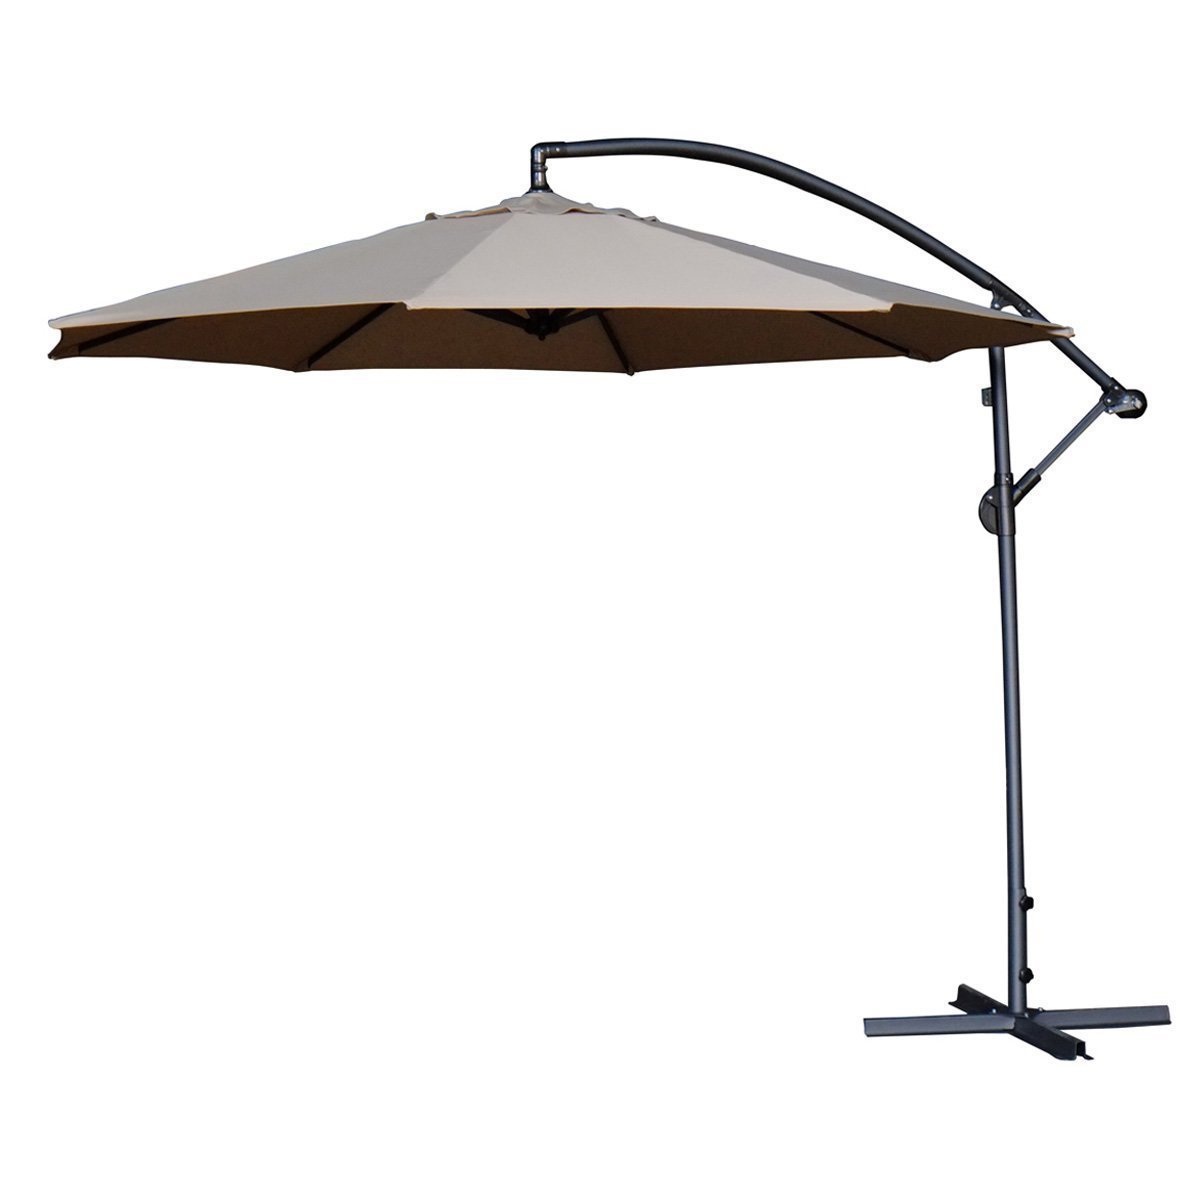 Widely Used Ketcham Cantilever Umbrellas In Irven 10' Cantilever Umbrella (View 20 of 20)